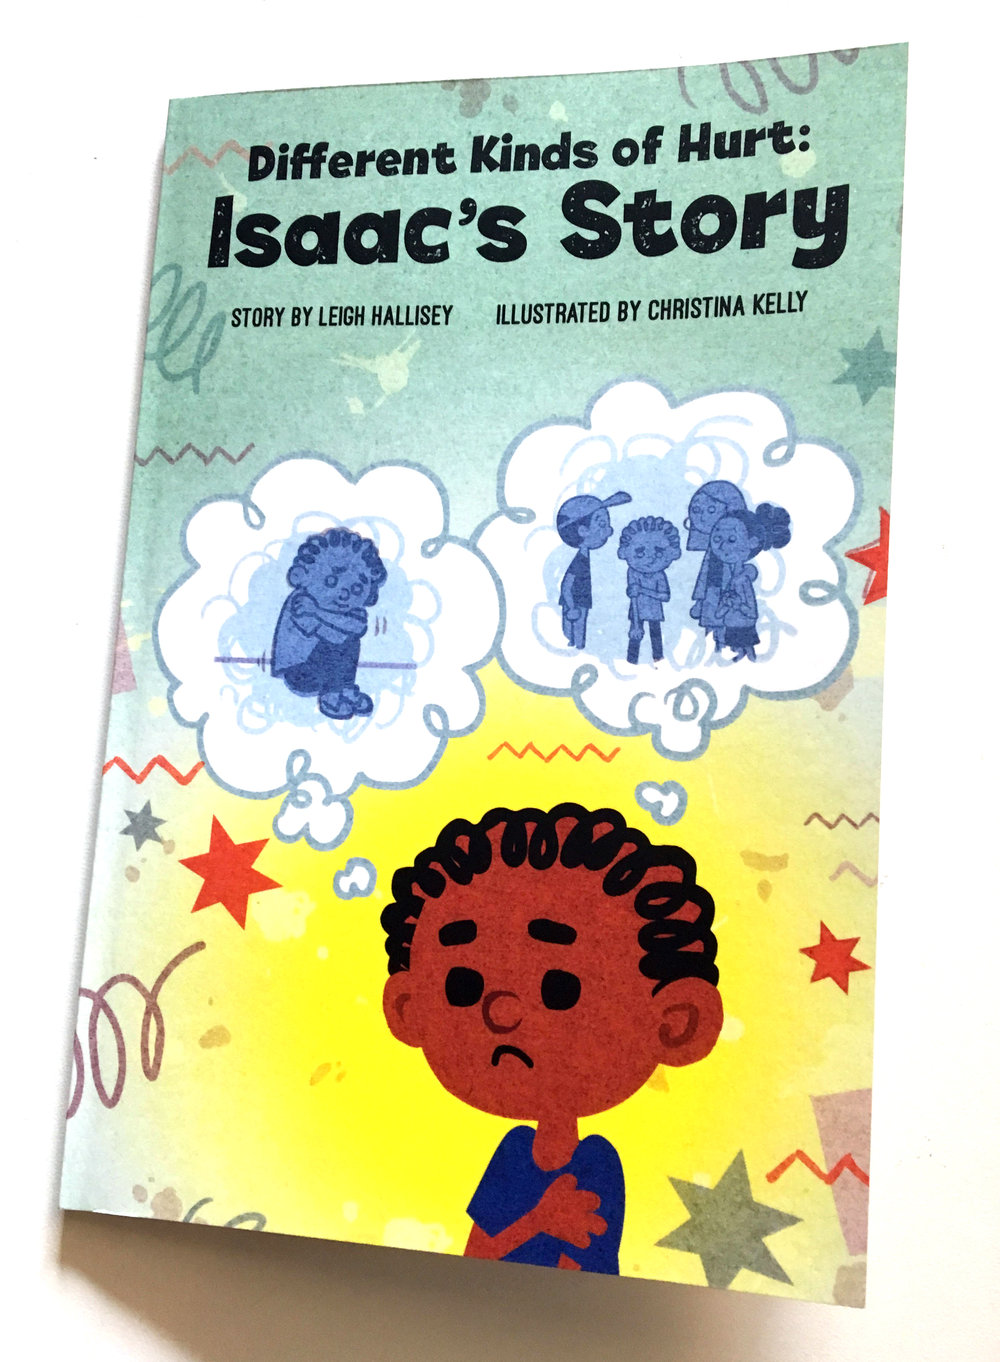 isaacsstorycover.jpg